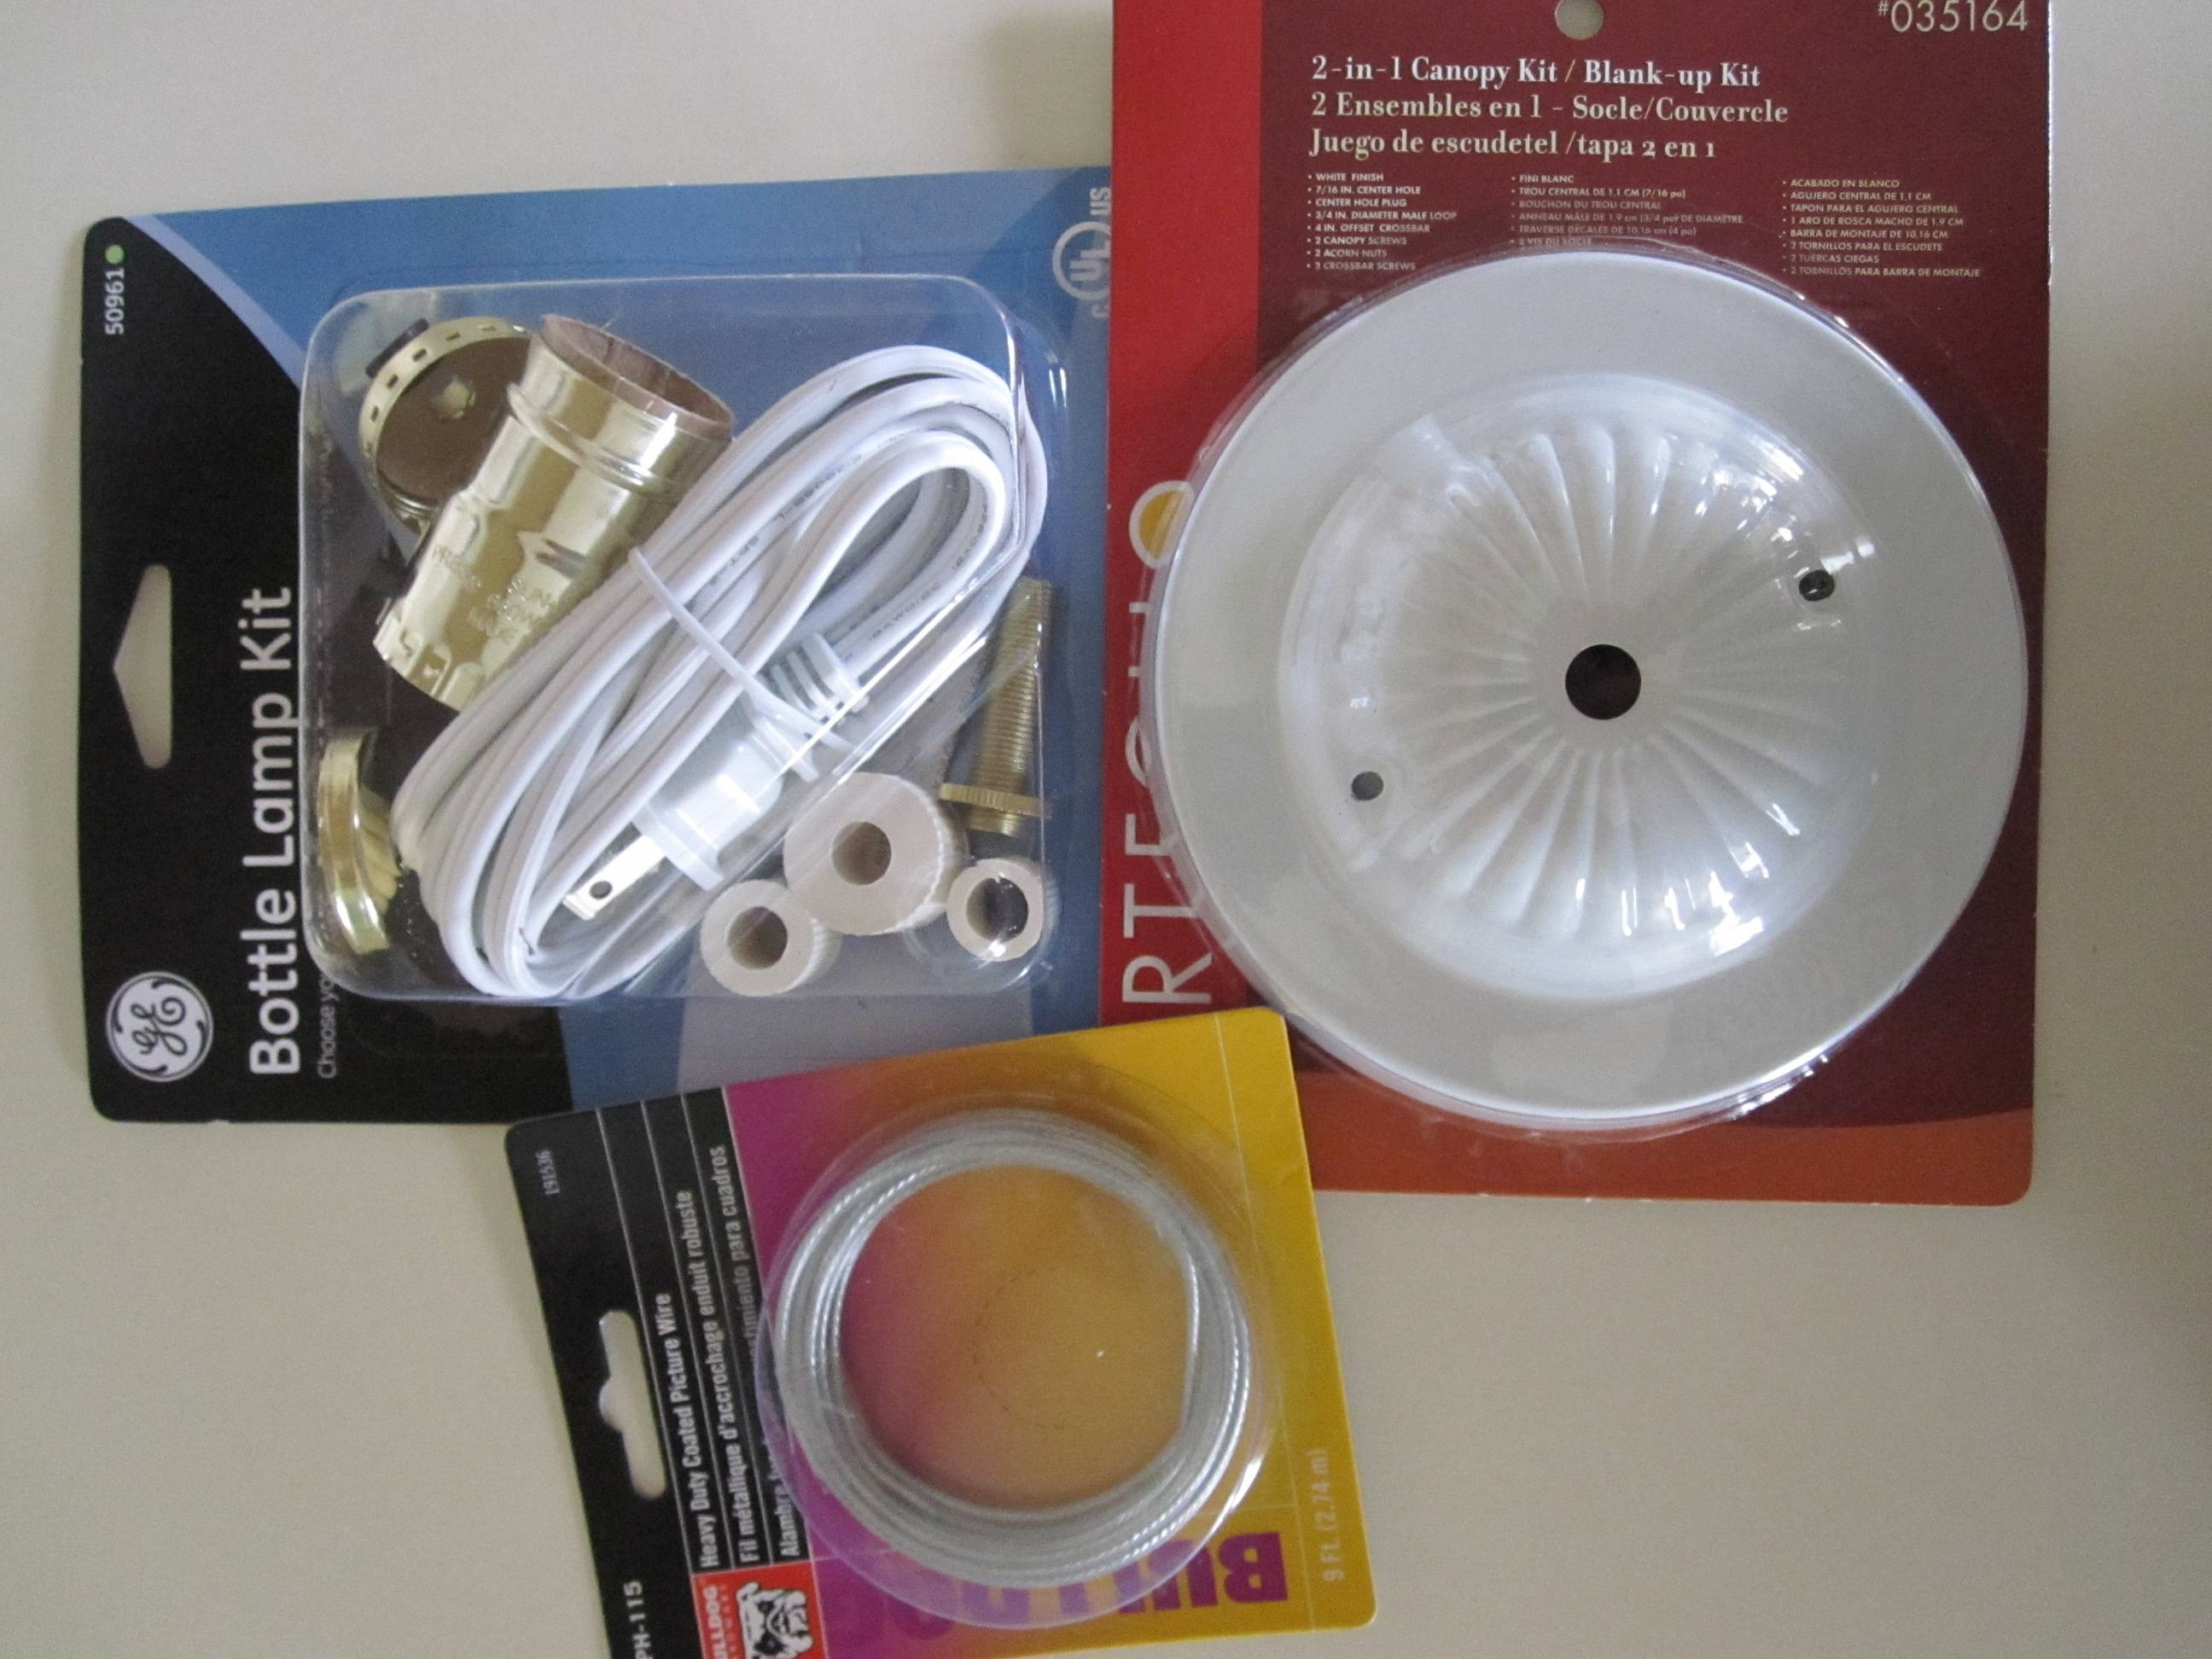 Wiring-And-Hanging-Supplies with Ikea Pendant Light Kits (Image 15 of 15)